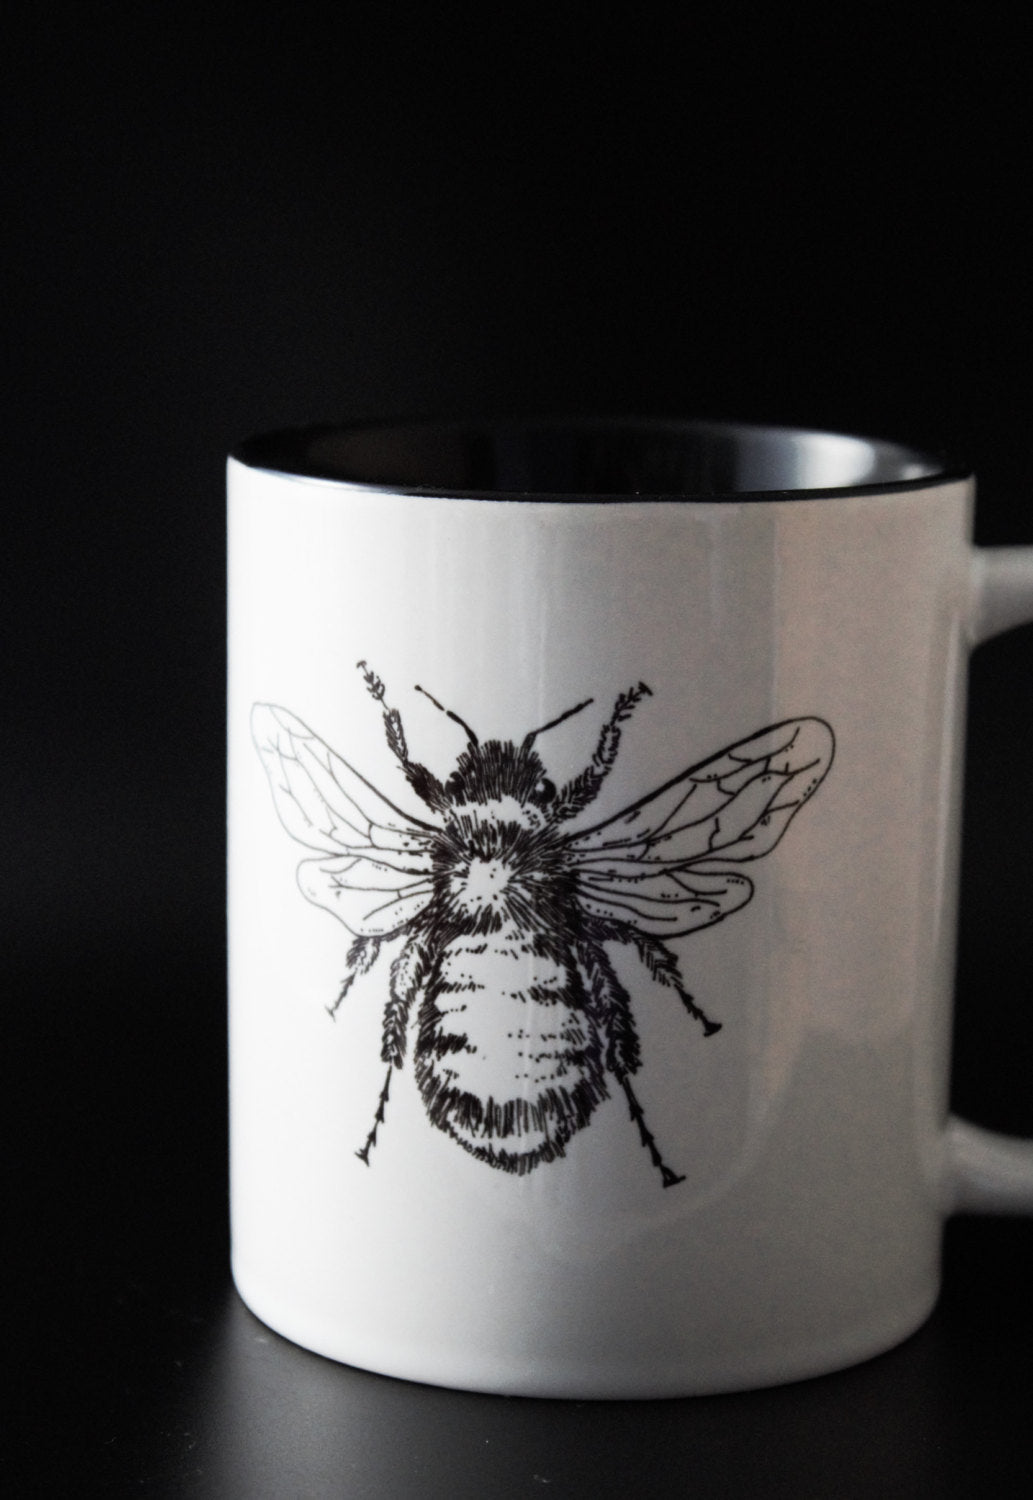 Botanical Bumble Bee - Hand Drawn -Hand Printed Cup - ByCandlelight27